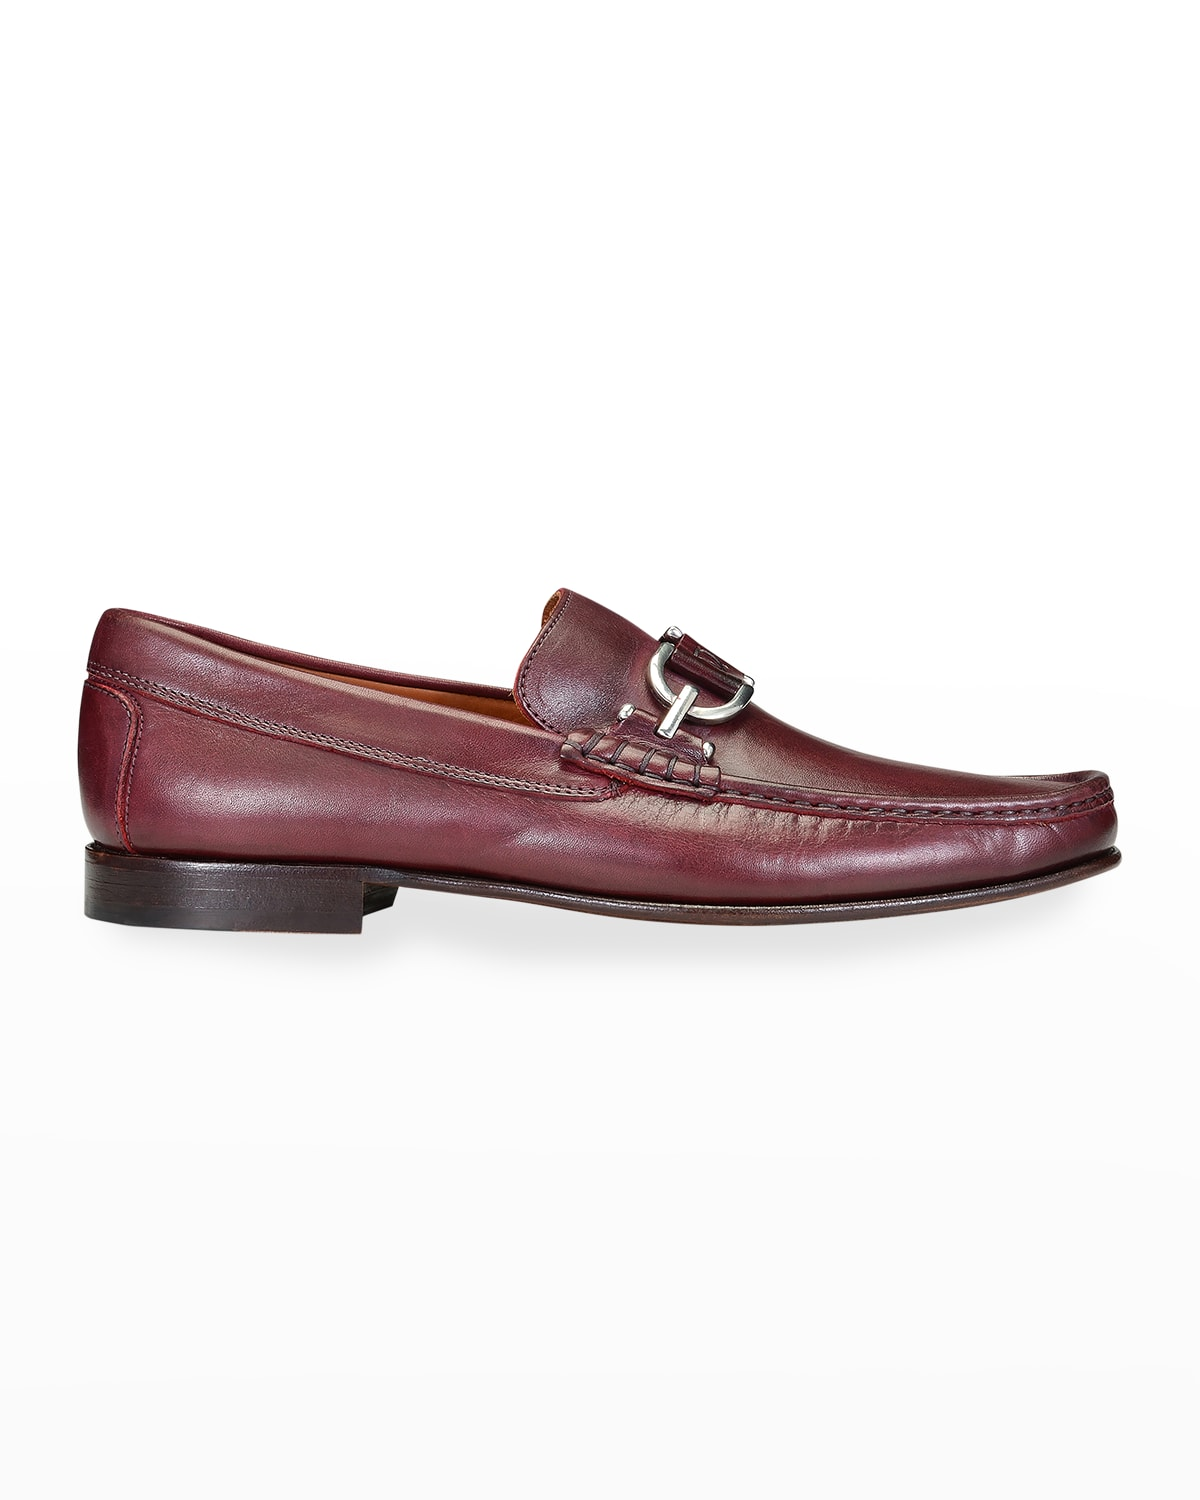 Men's Bit-Strap Leather Loafers